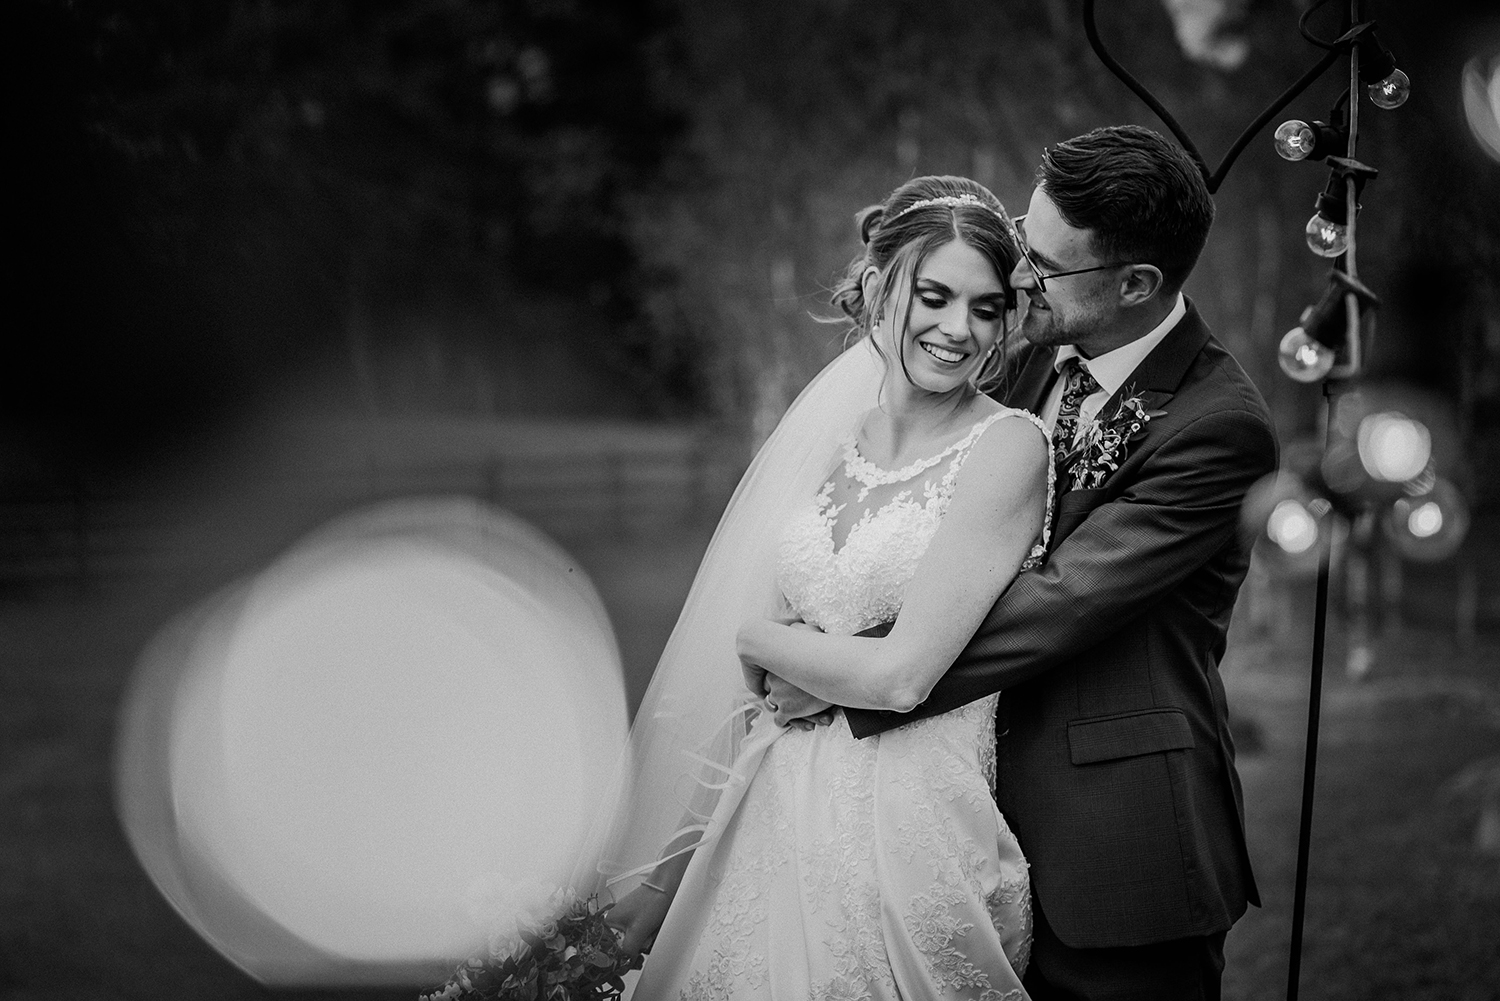 Bride and groom together at the Out barn wedding venue. BW photo